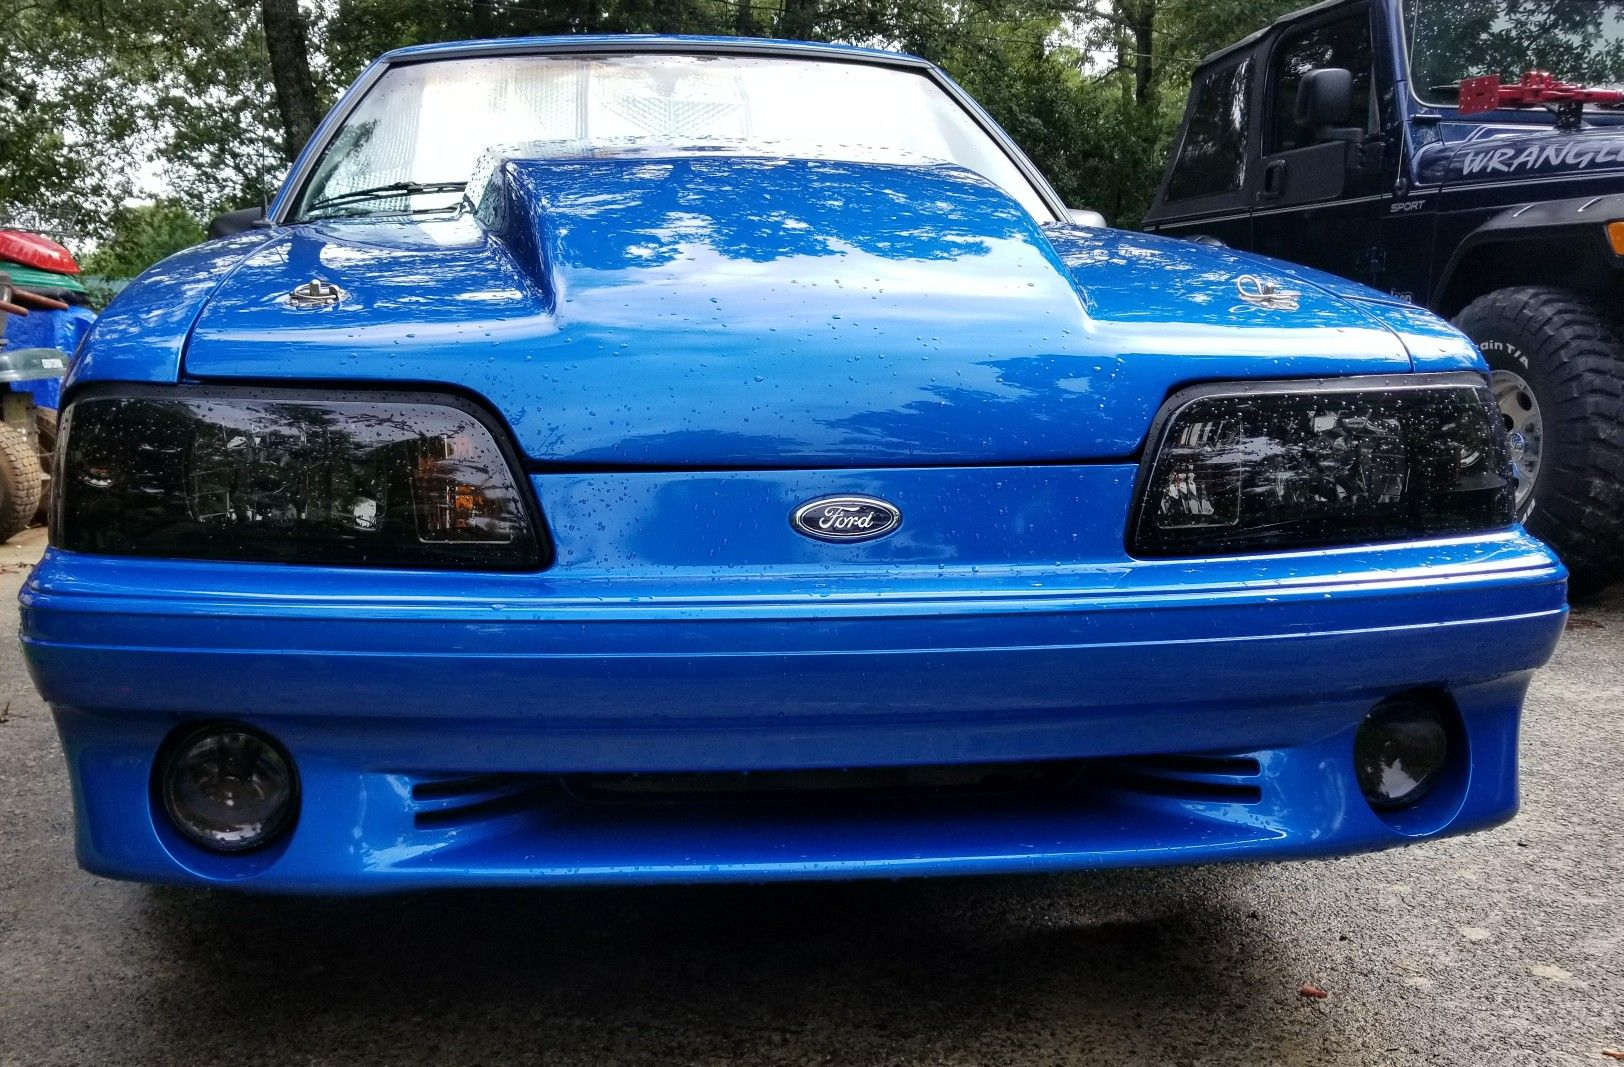 1990 Mustang LX 5 0 Hatchback With GT front bumper   blue